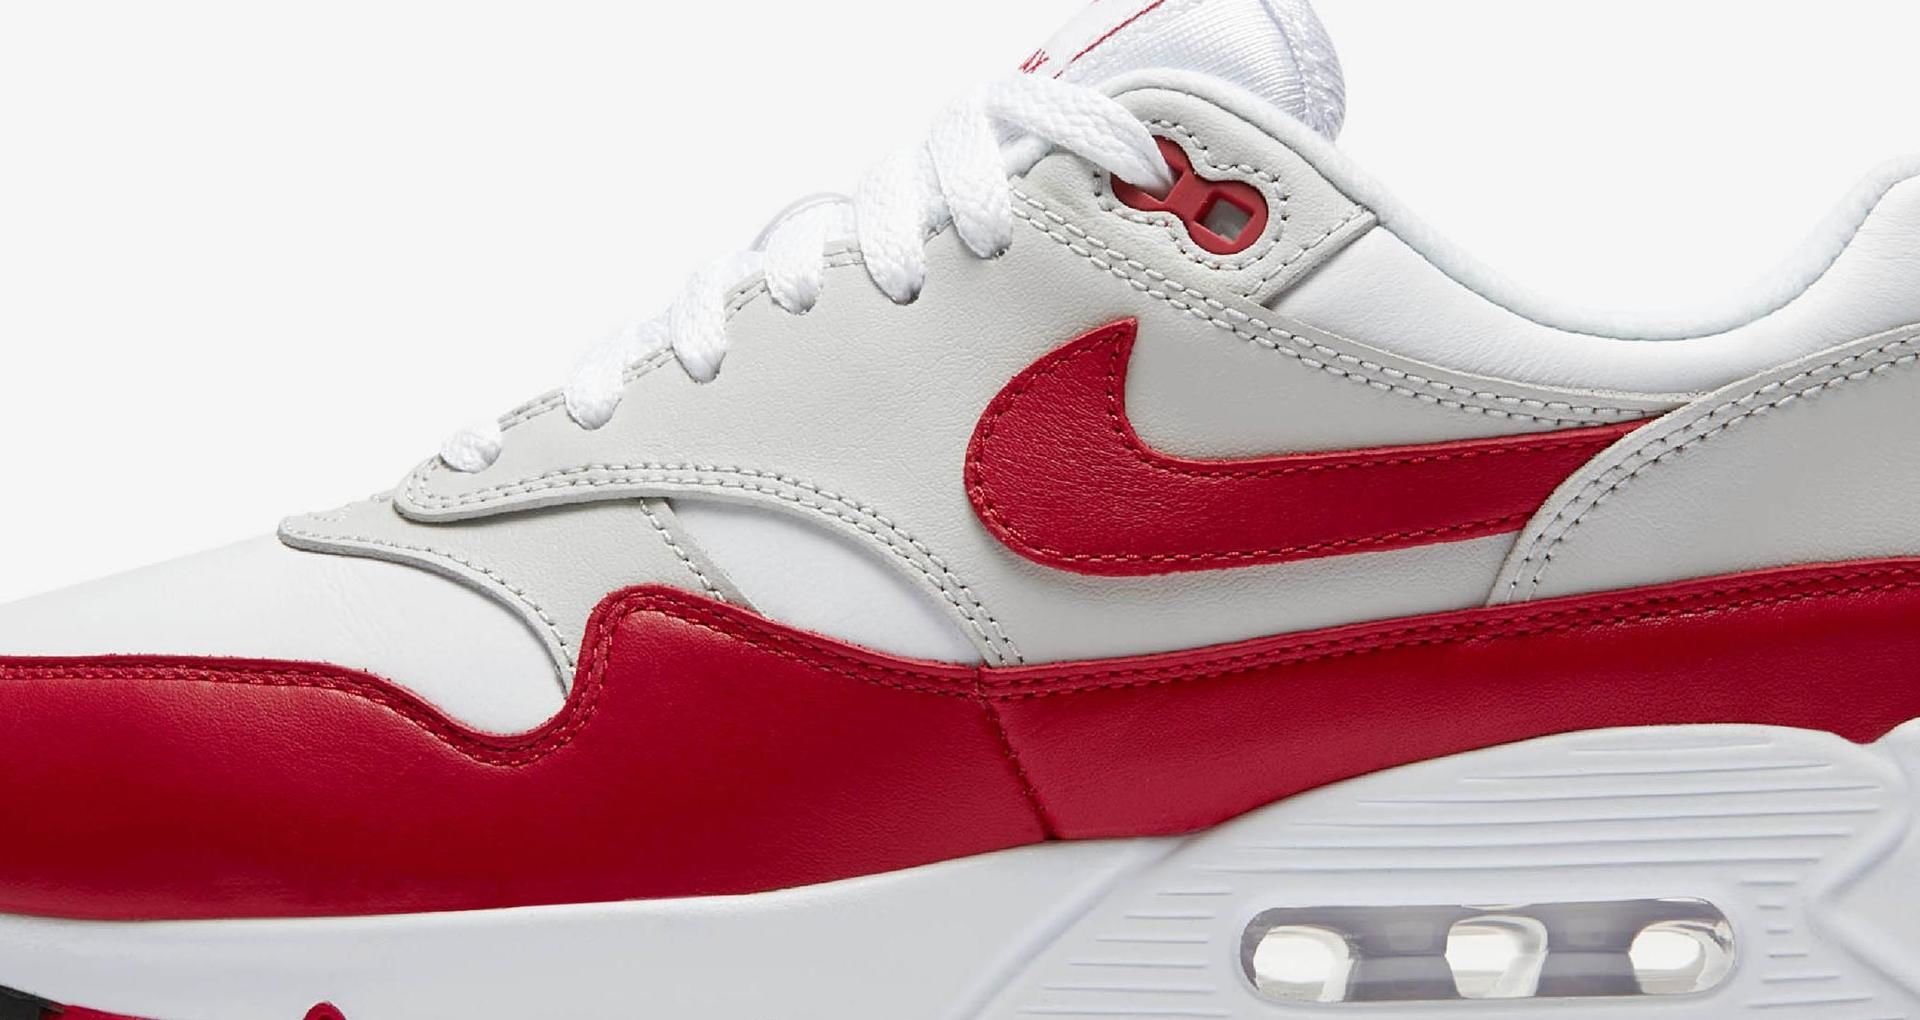 08-nike-womens-air-max-90-1-white-red-aq1273-100